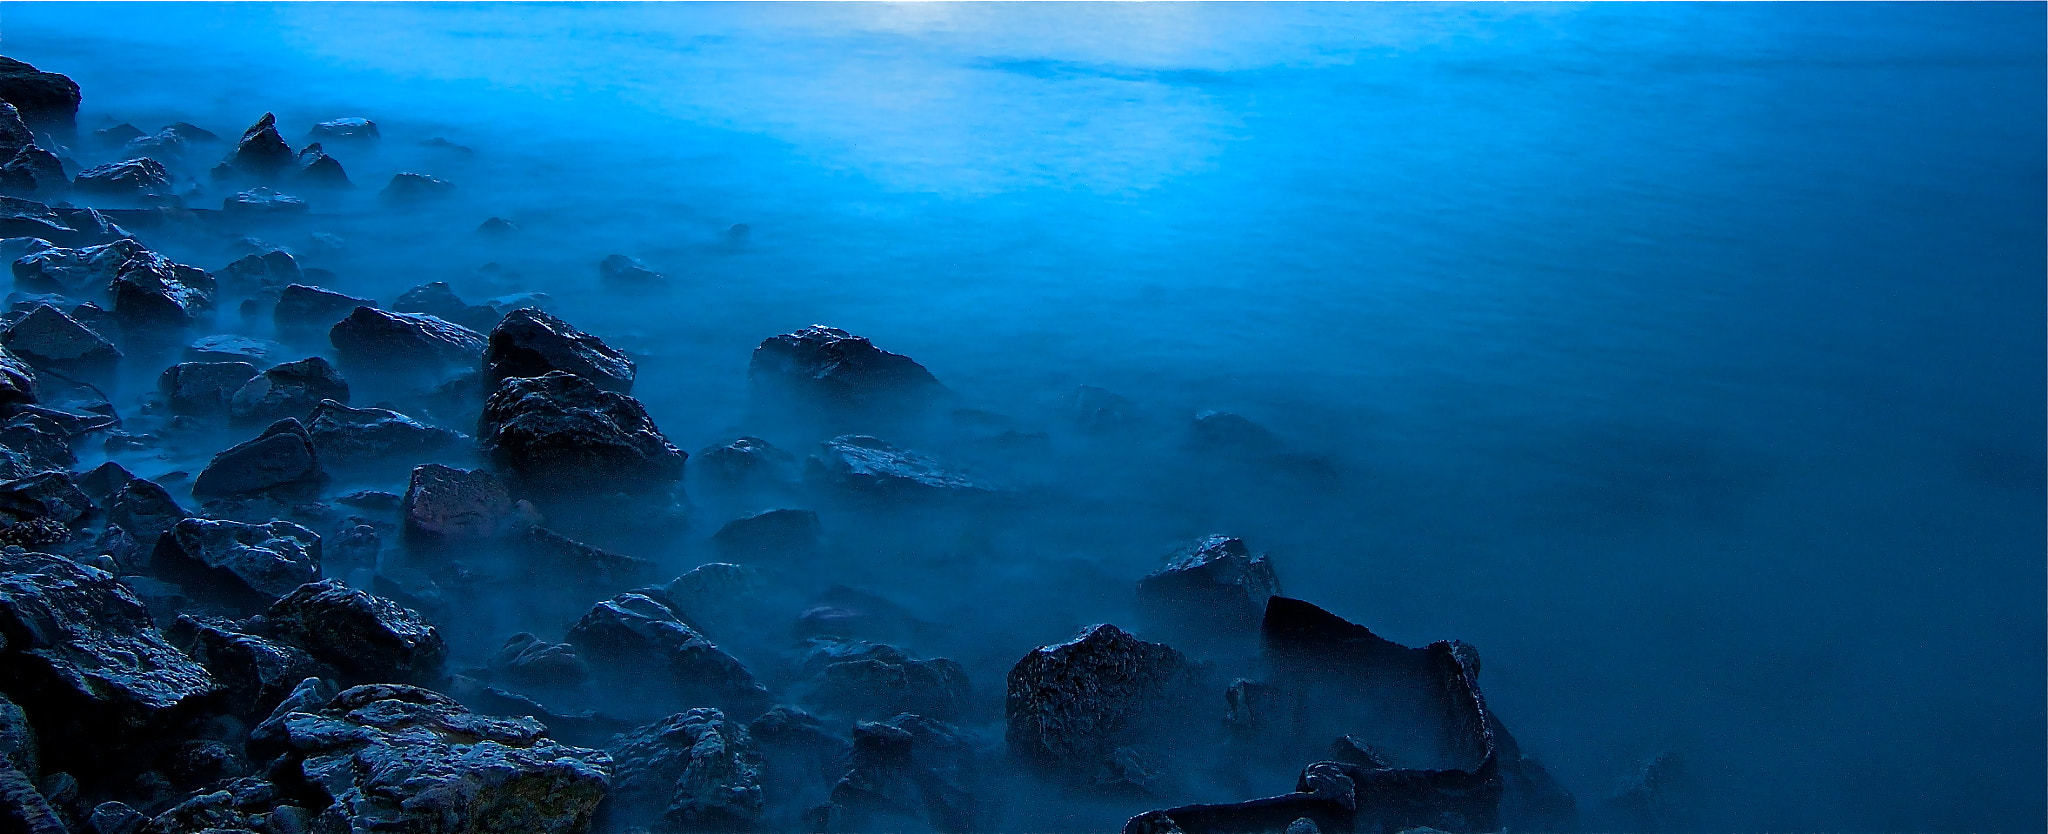 Photograph Dark night at the beach by Sufian Alashger on 500px